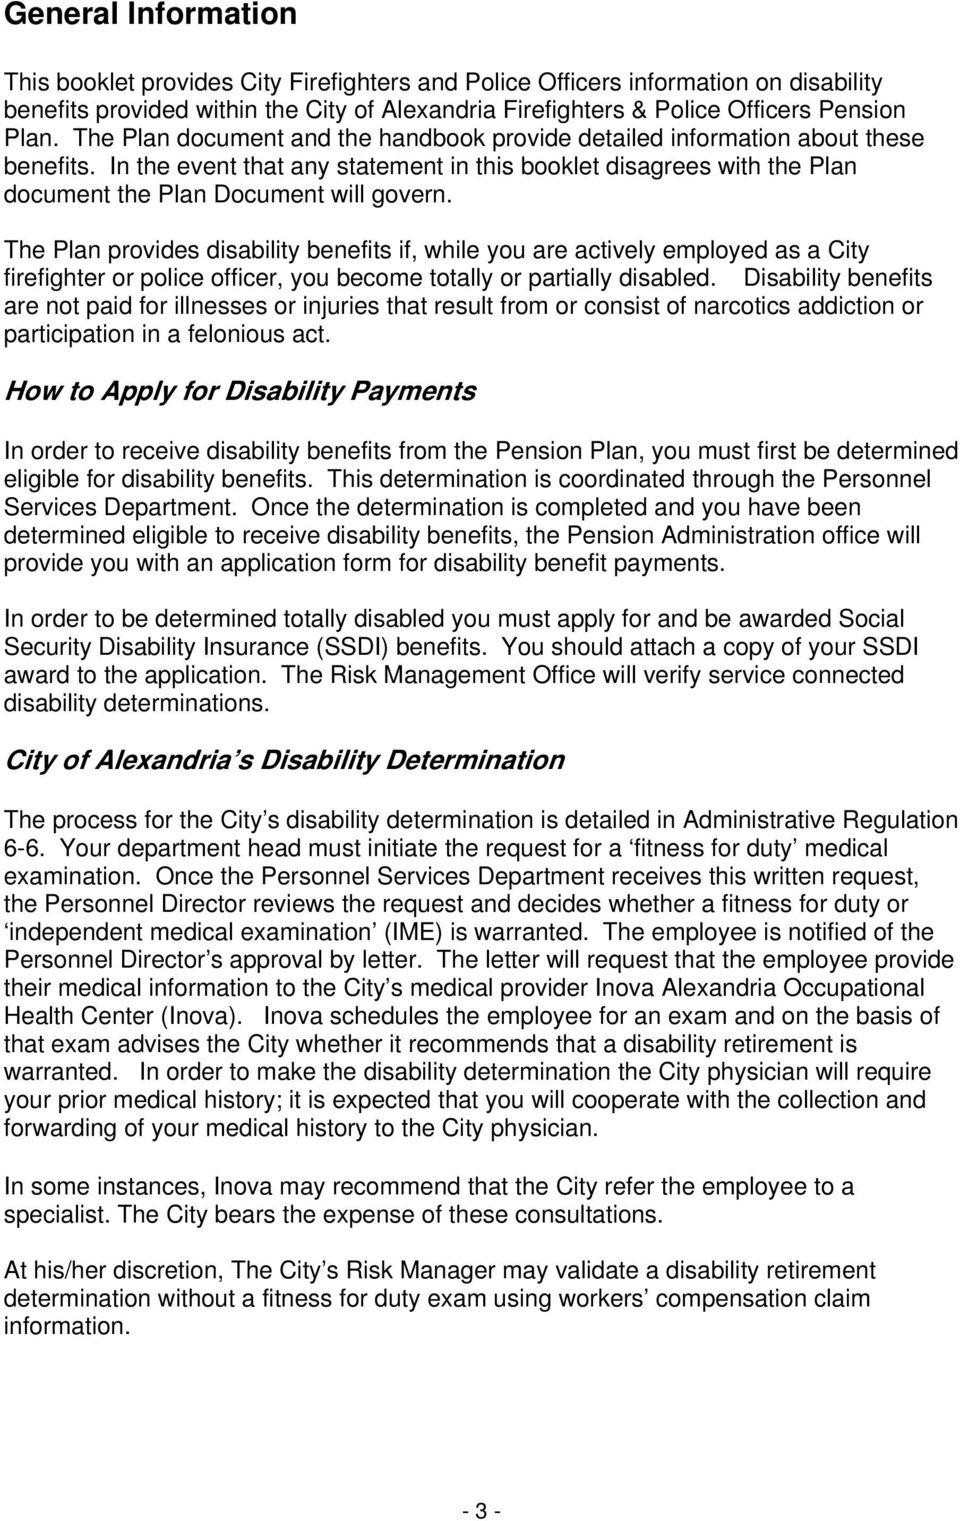 The Plan provides disability benefits if, while you are actively employed as a City firefighter or police officer, you become totally or partially disabled.